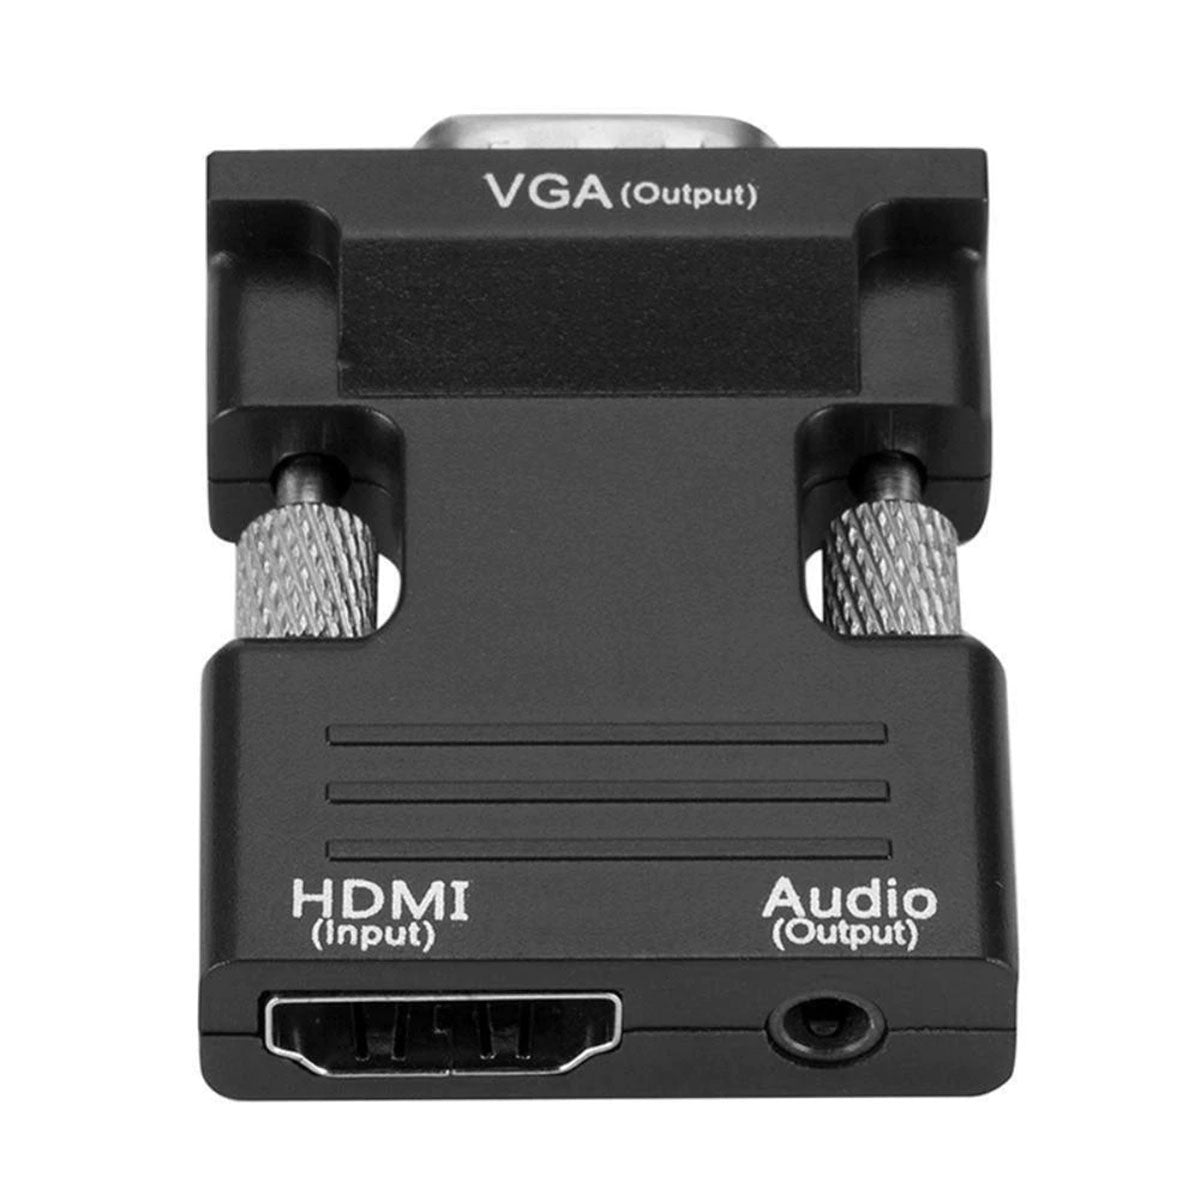 1080P VGA to HDMI Converter for HDTV Monitor